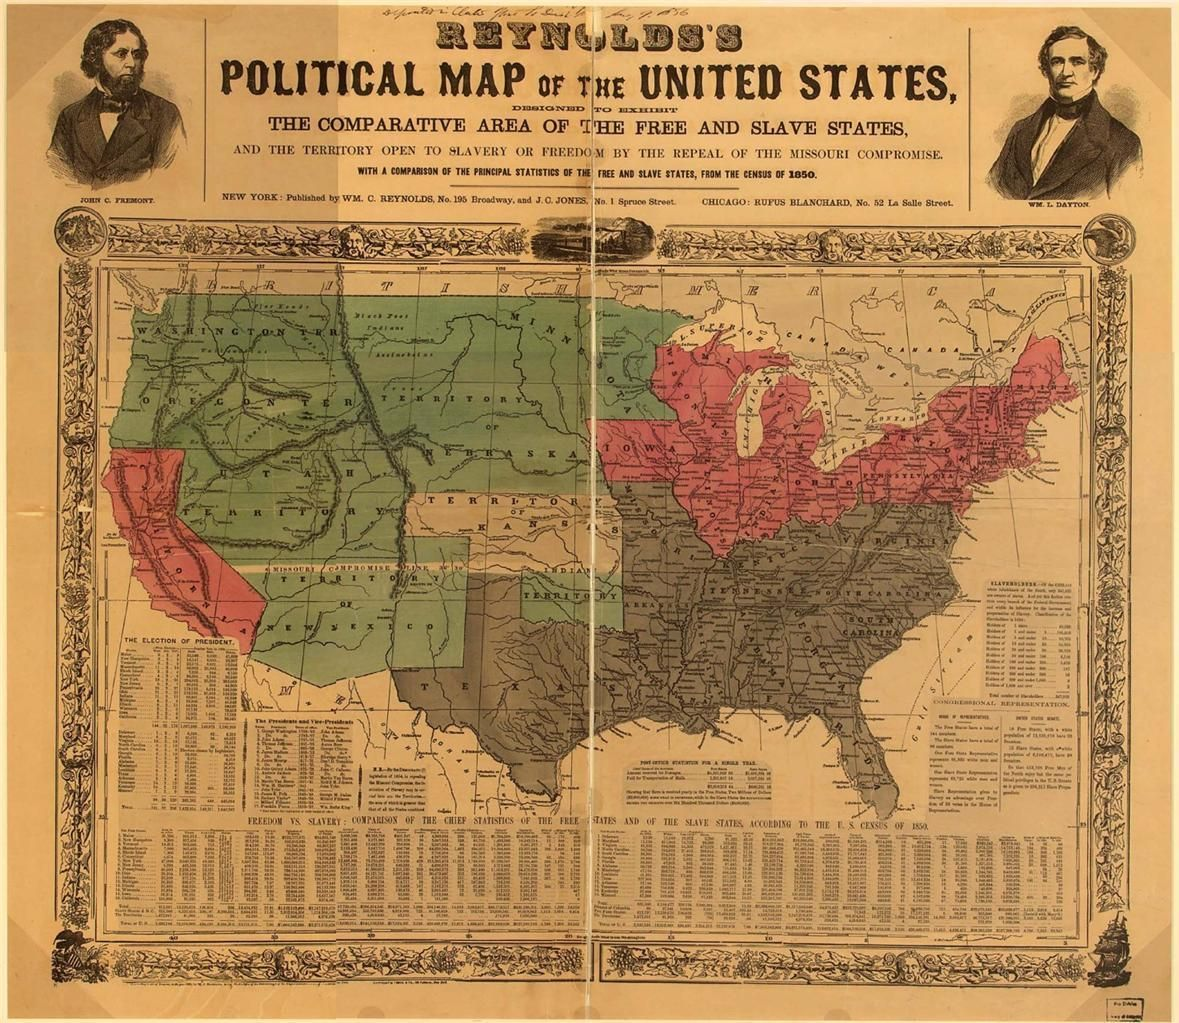 1850 POLITICAL MAP OF THE USA GLOSSY POSTER PICTURE PHOTO free slave